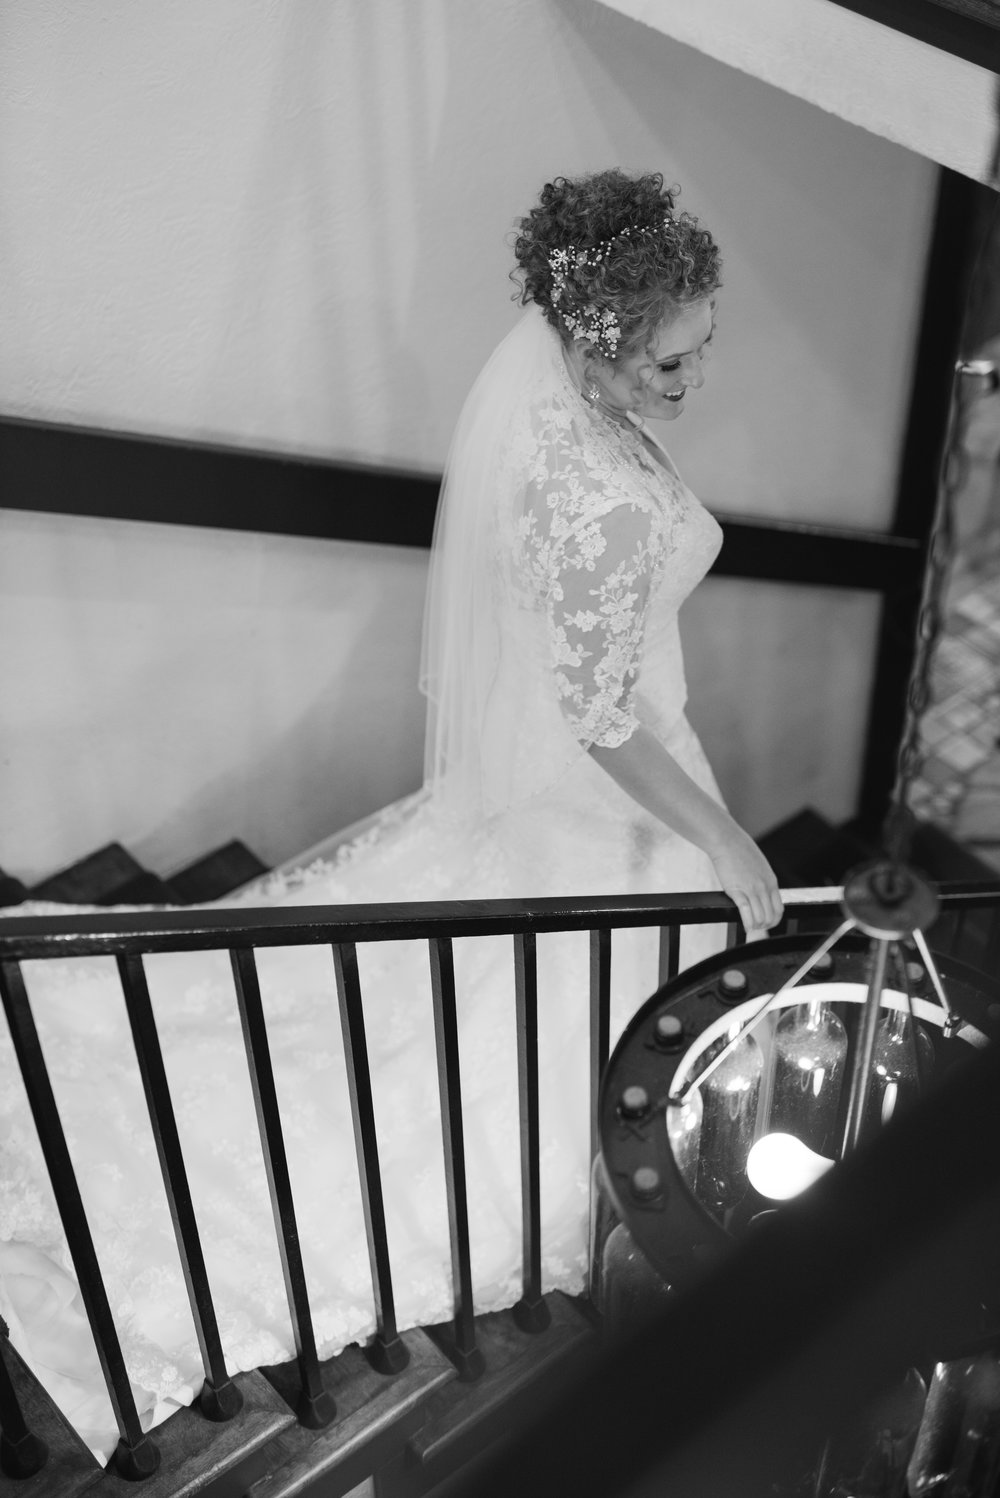 Amanda&MatthewWedding (3 of 3)-4.JPG